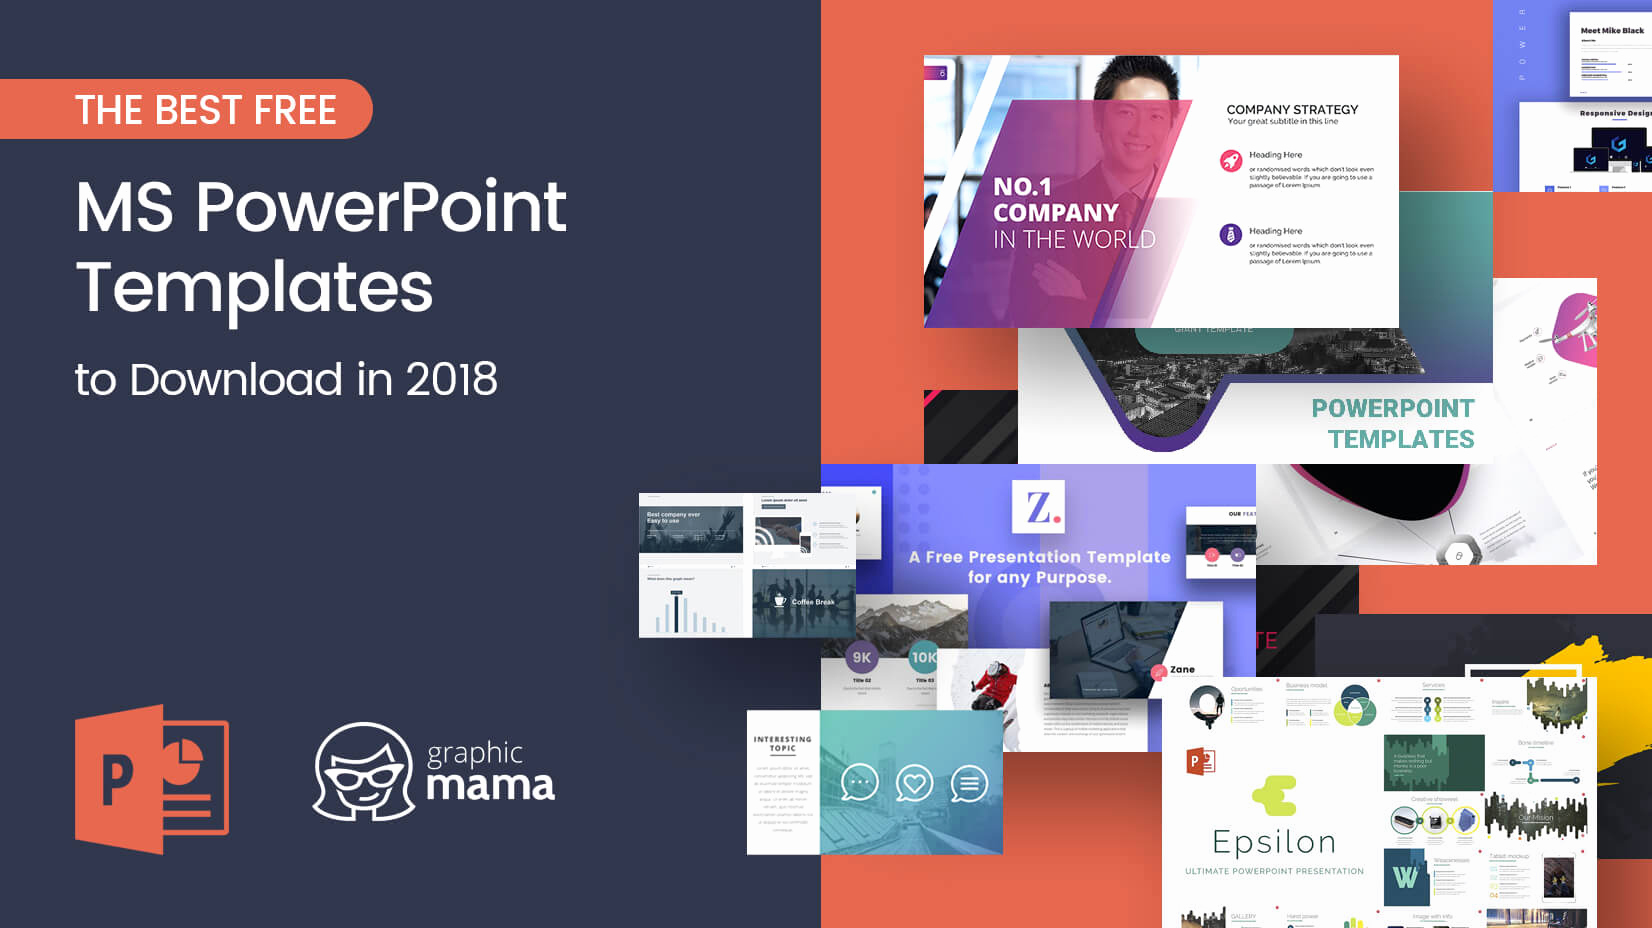 Best Powerpoint Templates Free Download New the Best Free Powerpoint Templates to Download In 2018